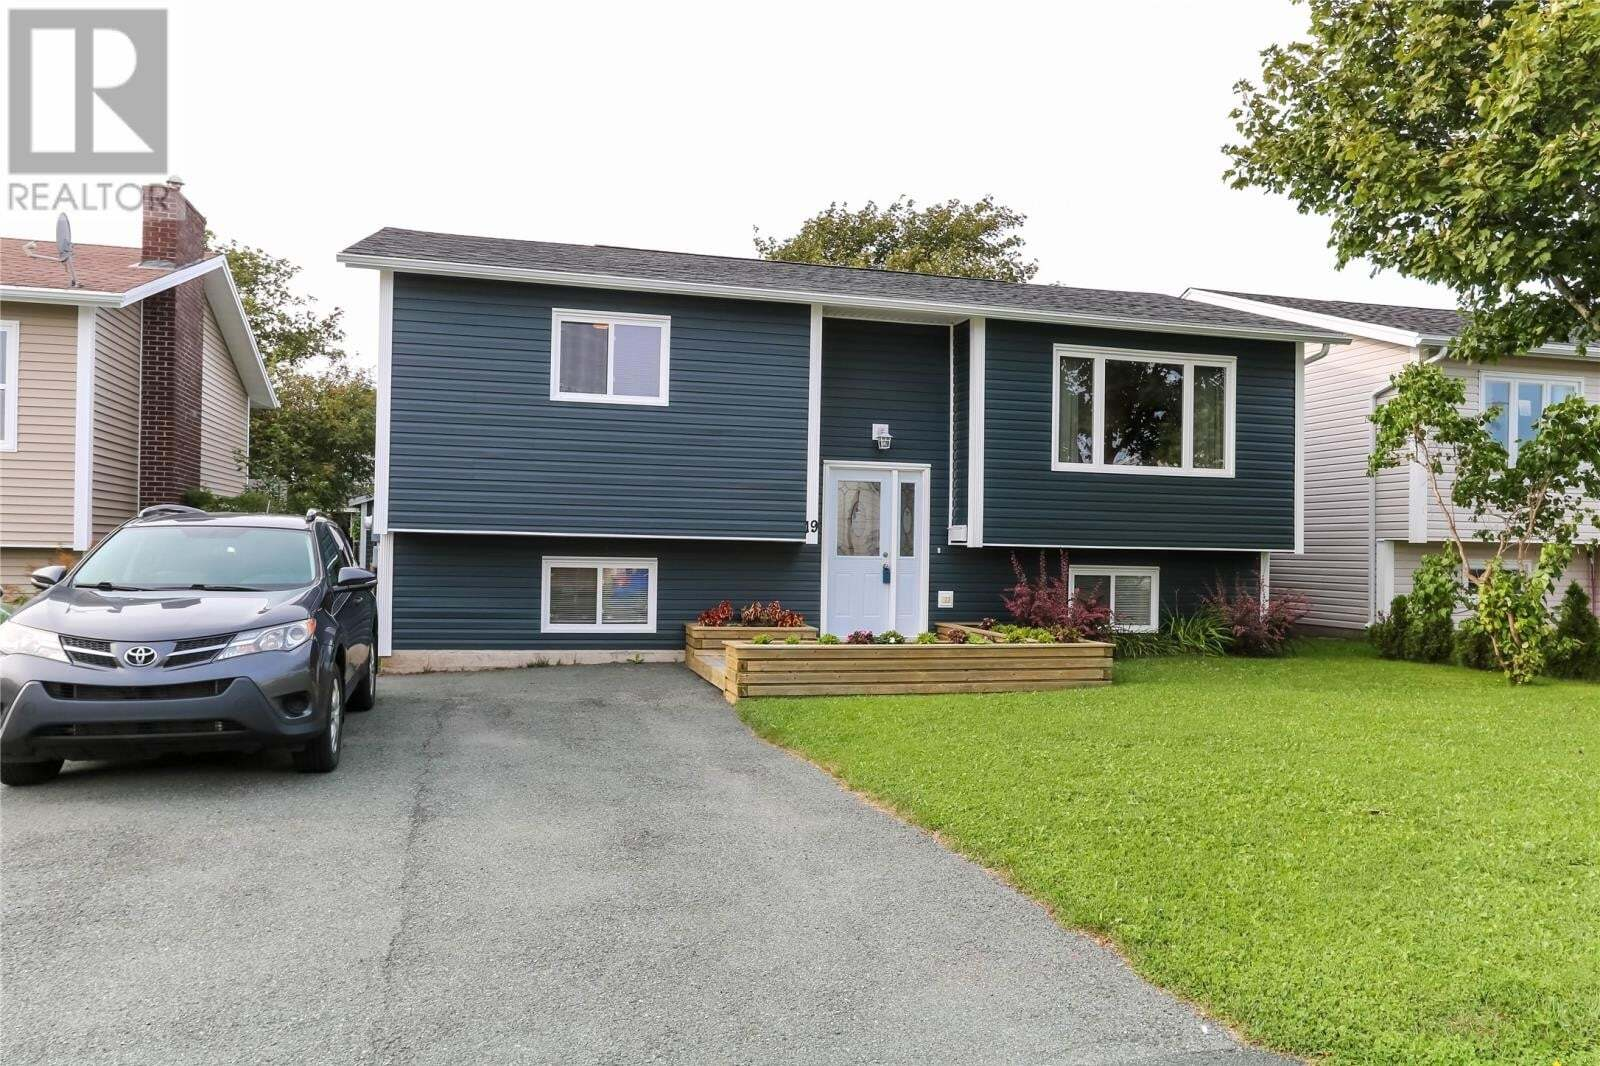 House for sale at 19 Princeton Cres Mount Pearl Newfoundland - MLS: 1221345